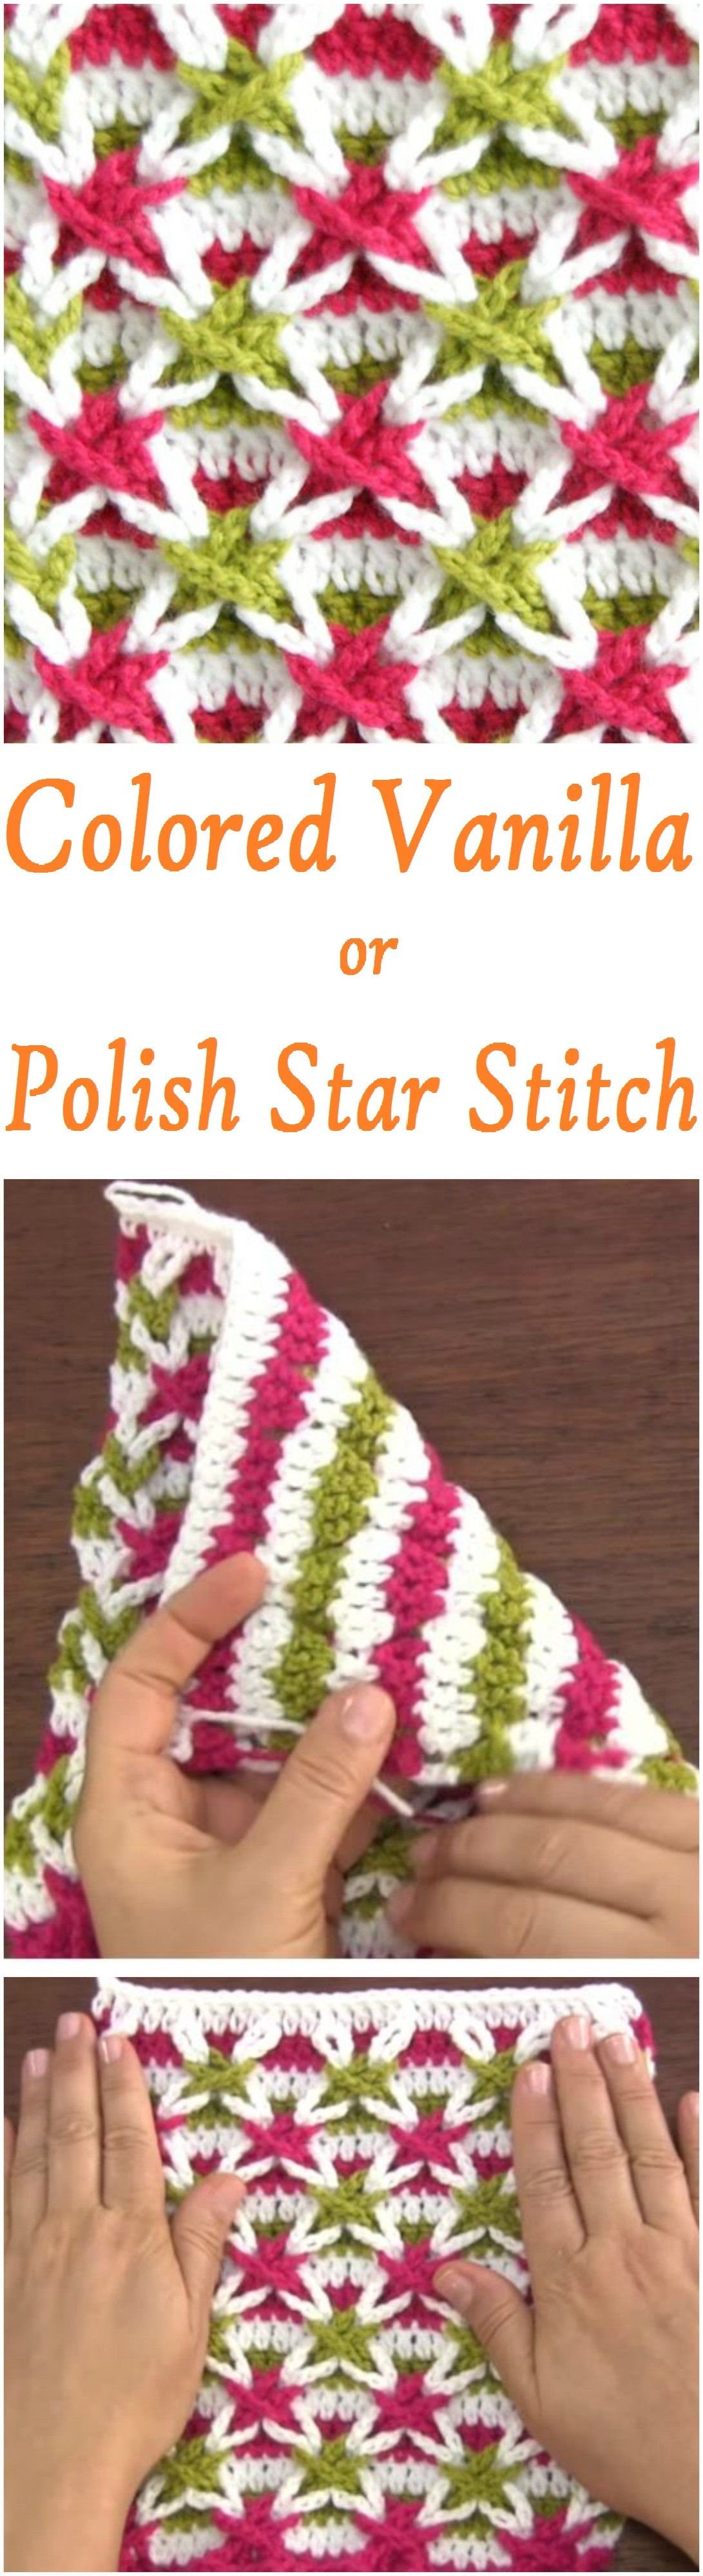 Crochet Polish star or Vanilla Star | Cool bits and pieces things ...